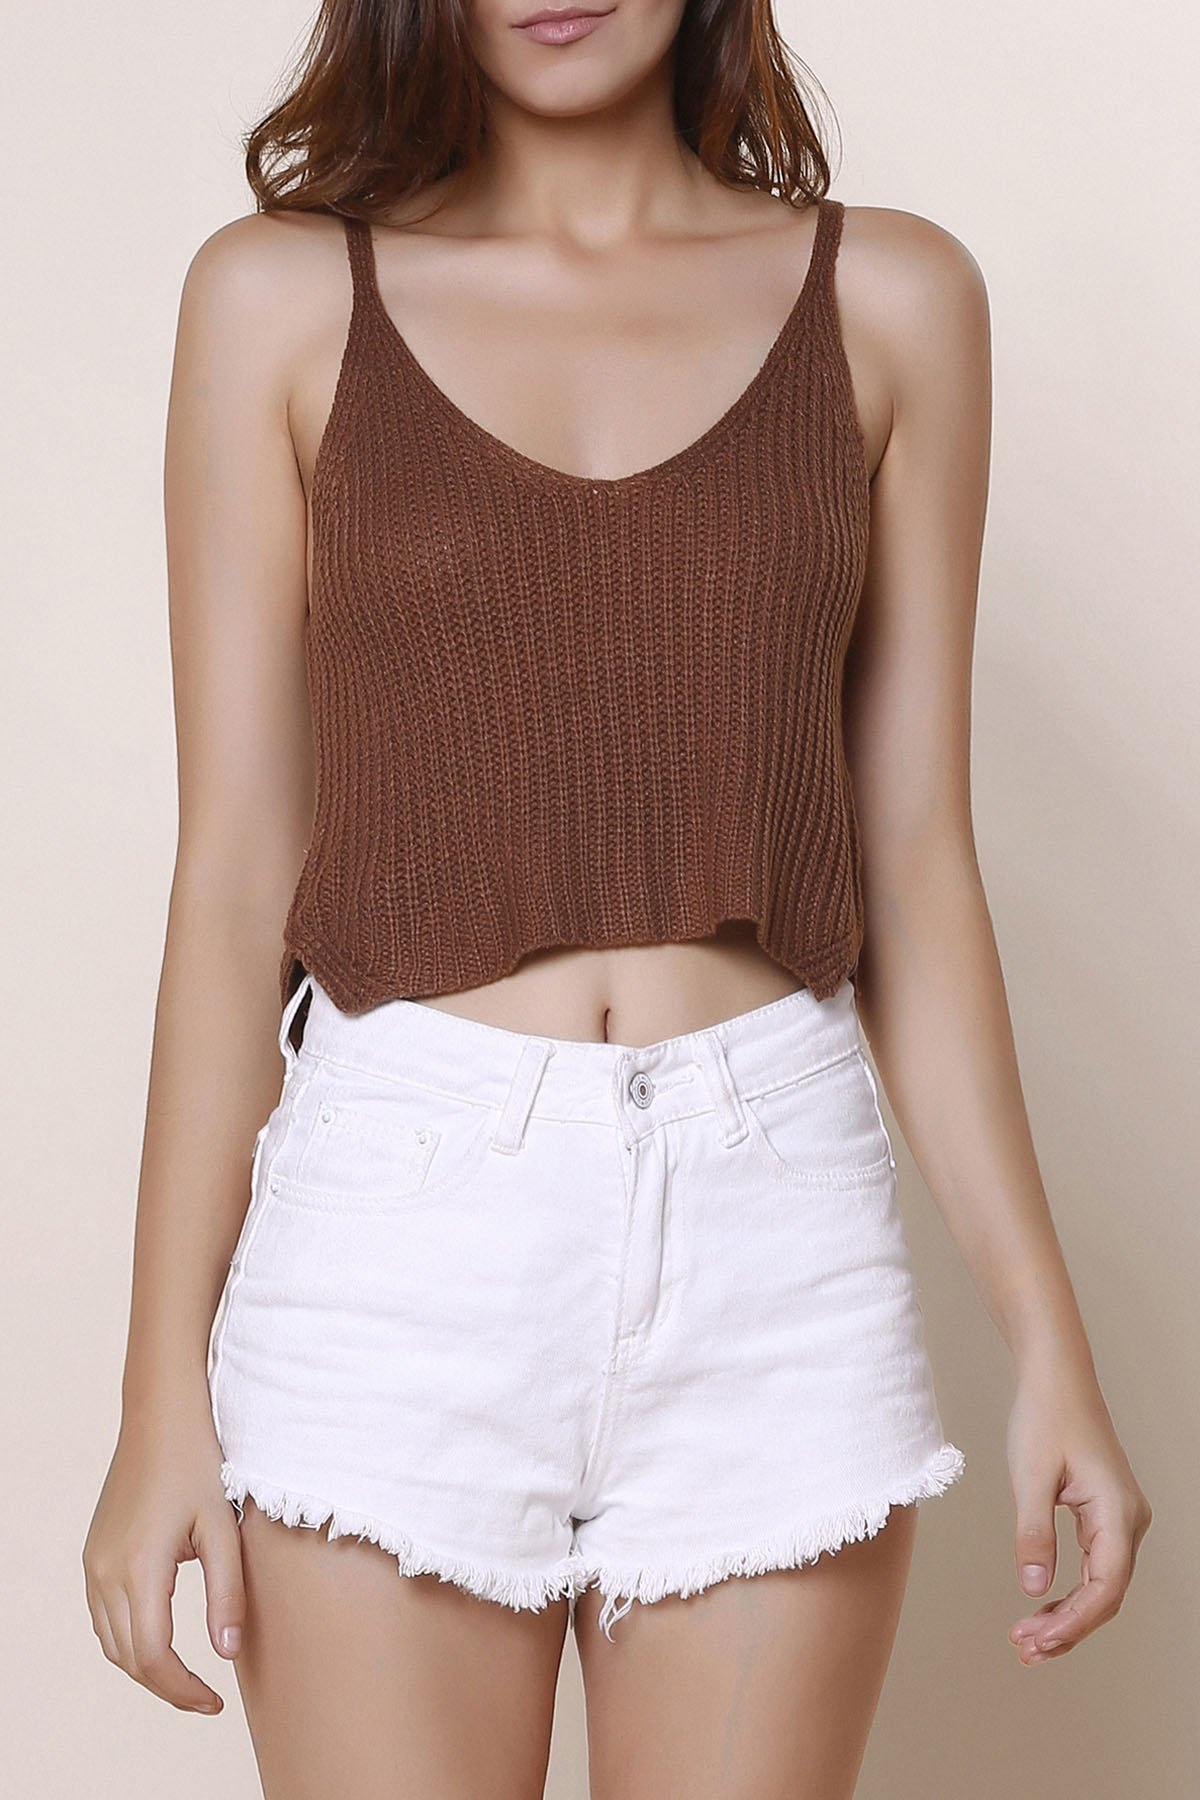 Sexy Women's V-Neck Solid Color Knitted Crop Top - ORANGE ONE SIZE(FIT SIZE XS TO M)